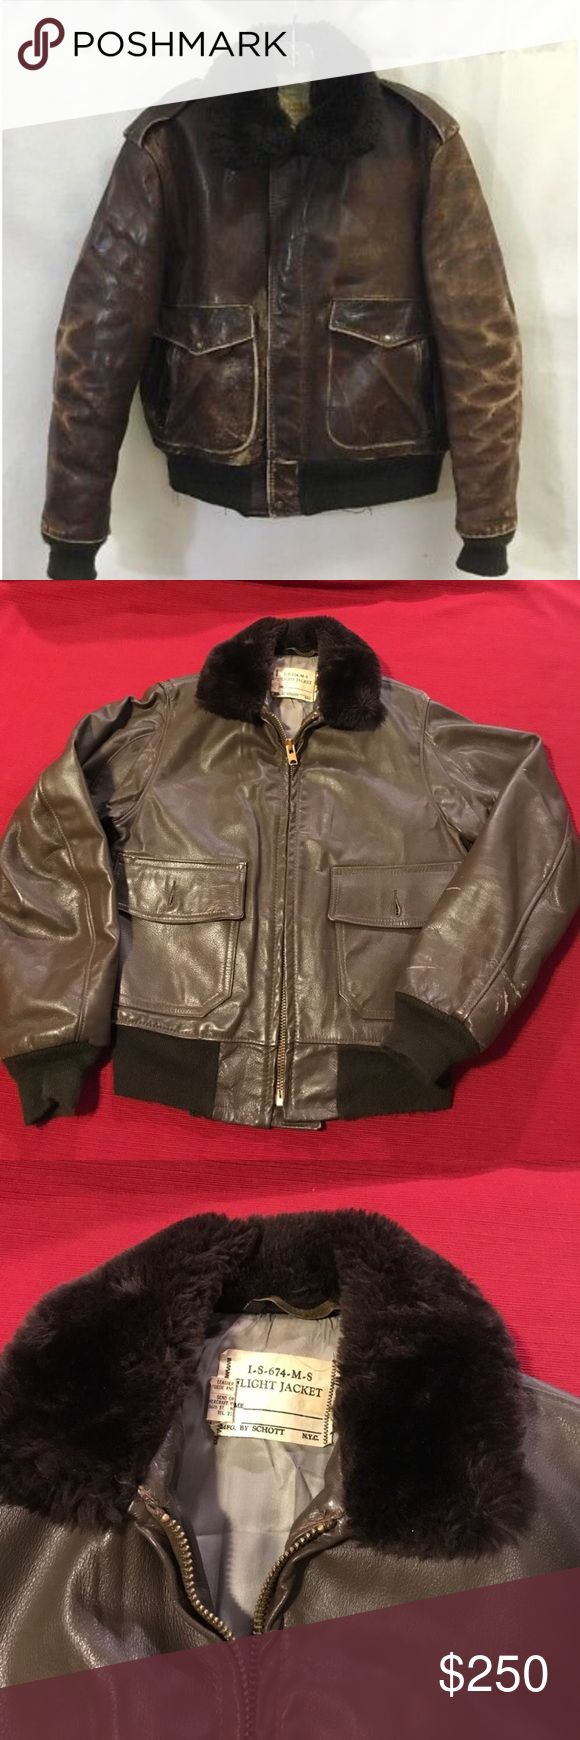 Schott NYC Flight Jacket Bomber Leather Vintage piece! Old school flight jacket. Bought from another posher but doesn't fit me :( see last thee photos for actual Jacket (first photo is for more vintage style). Awesome awesome piece to complete your wardrobe. Made in USA. One of a kind leather bomber. Schott NYC Jackets & Coats